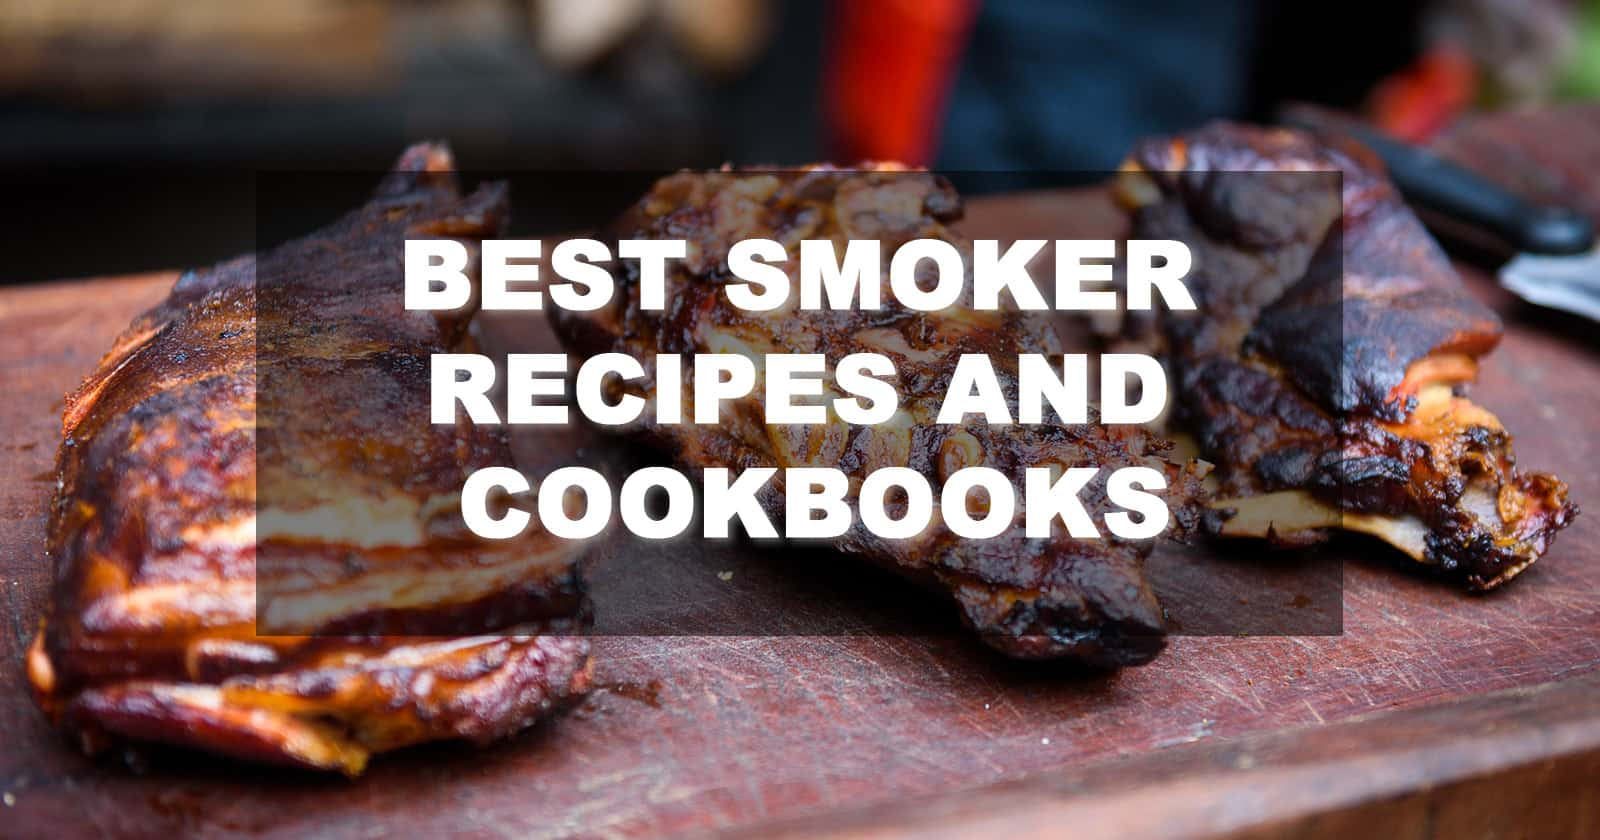 Best Smoker Cookbooks Recipes